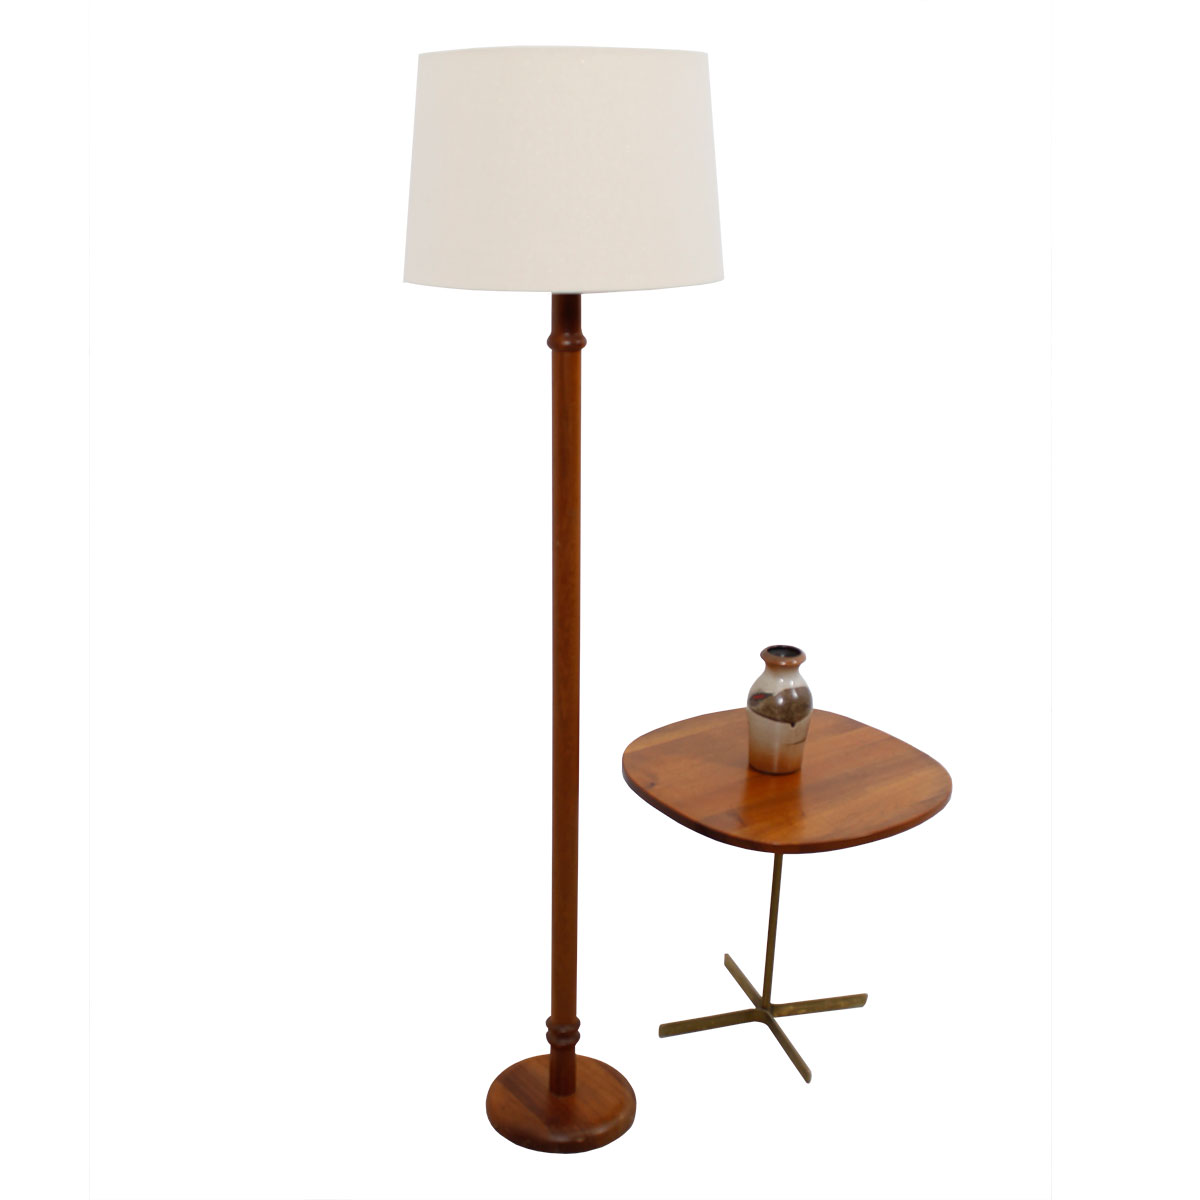 The Danish Modern Teak 'Ribbed' Floor Lamp